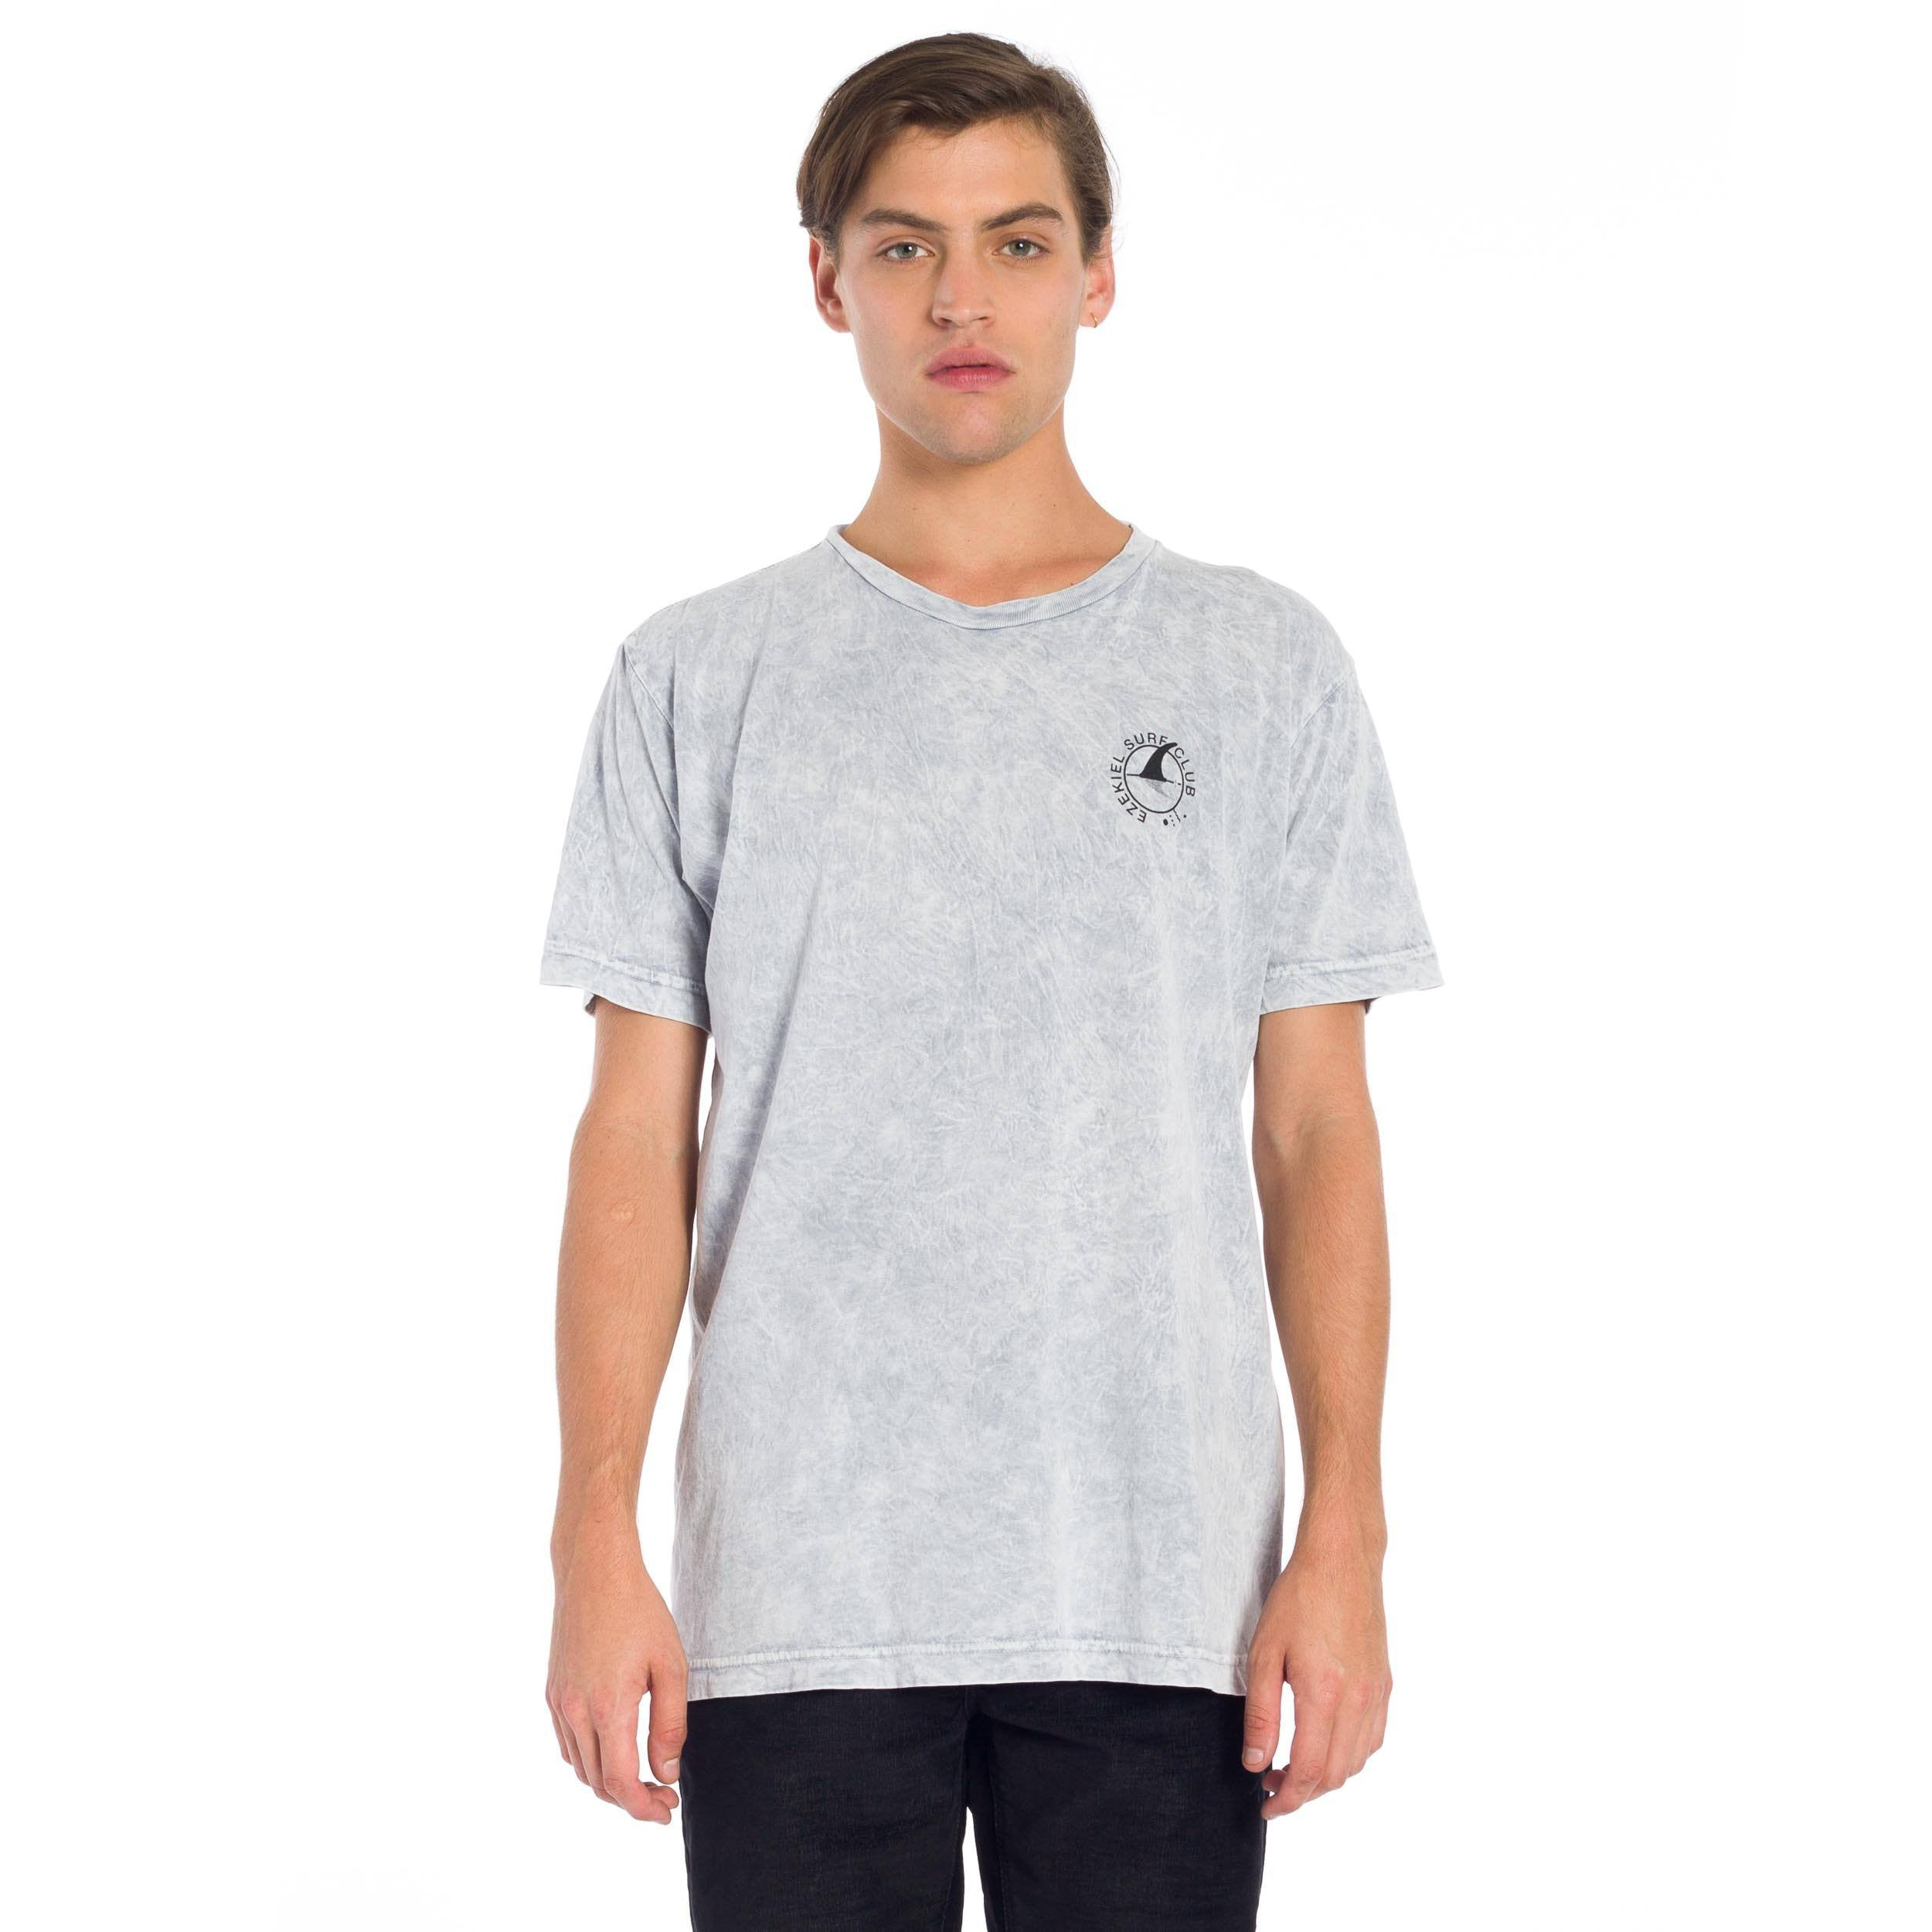 Team T-Shirt - Grey